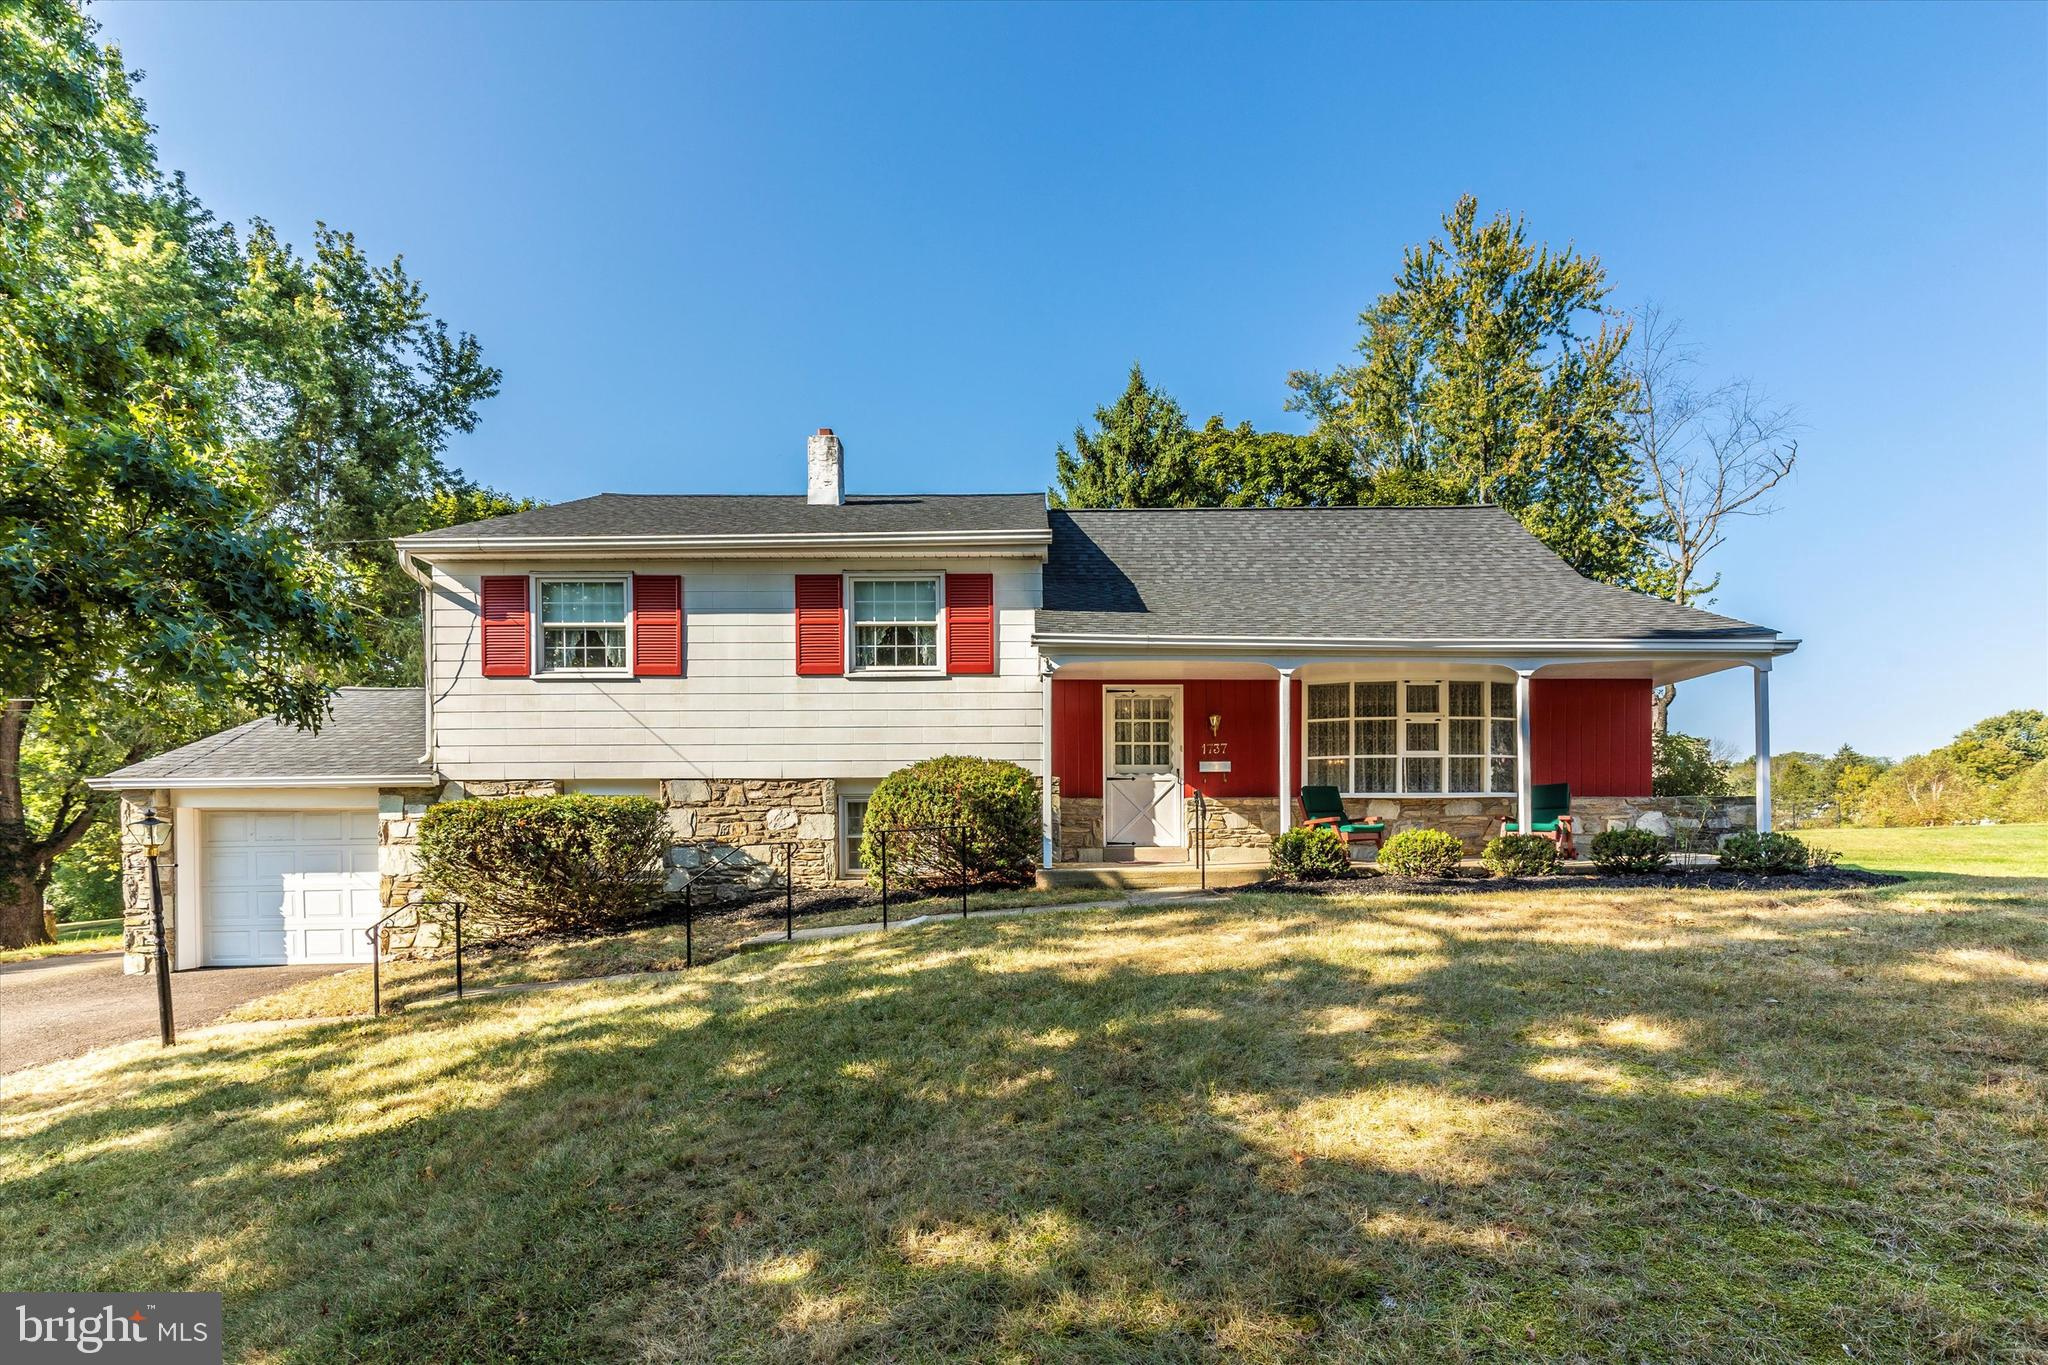 1737 AIDENN LAIR ROAD, DRESHER, PA 19025